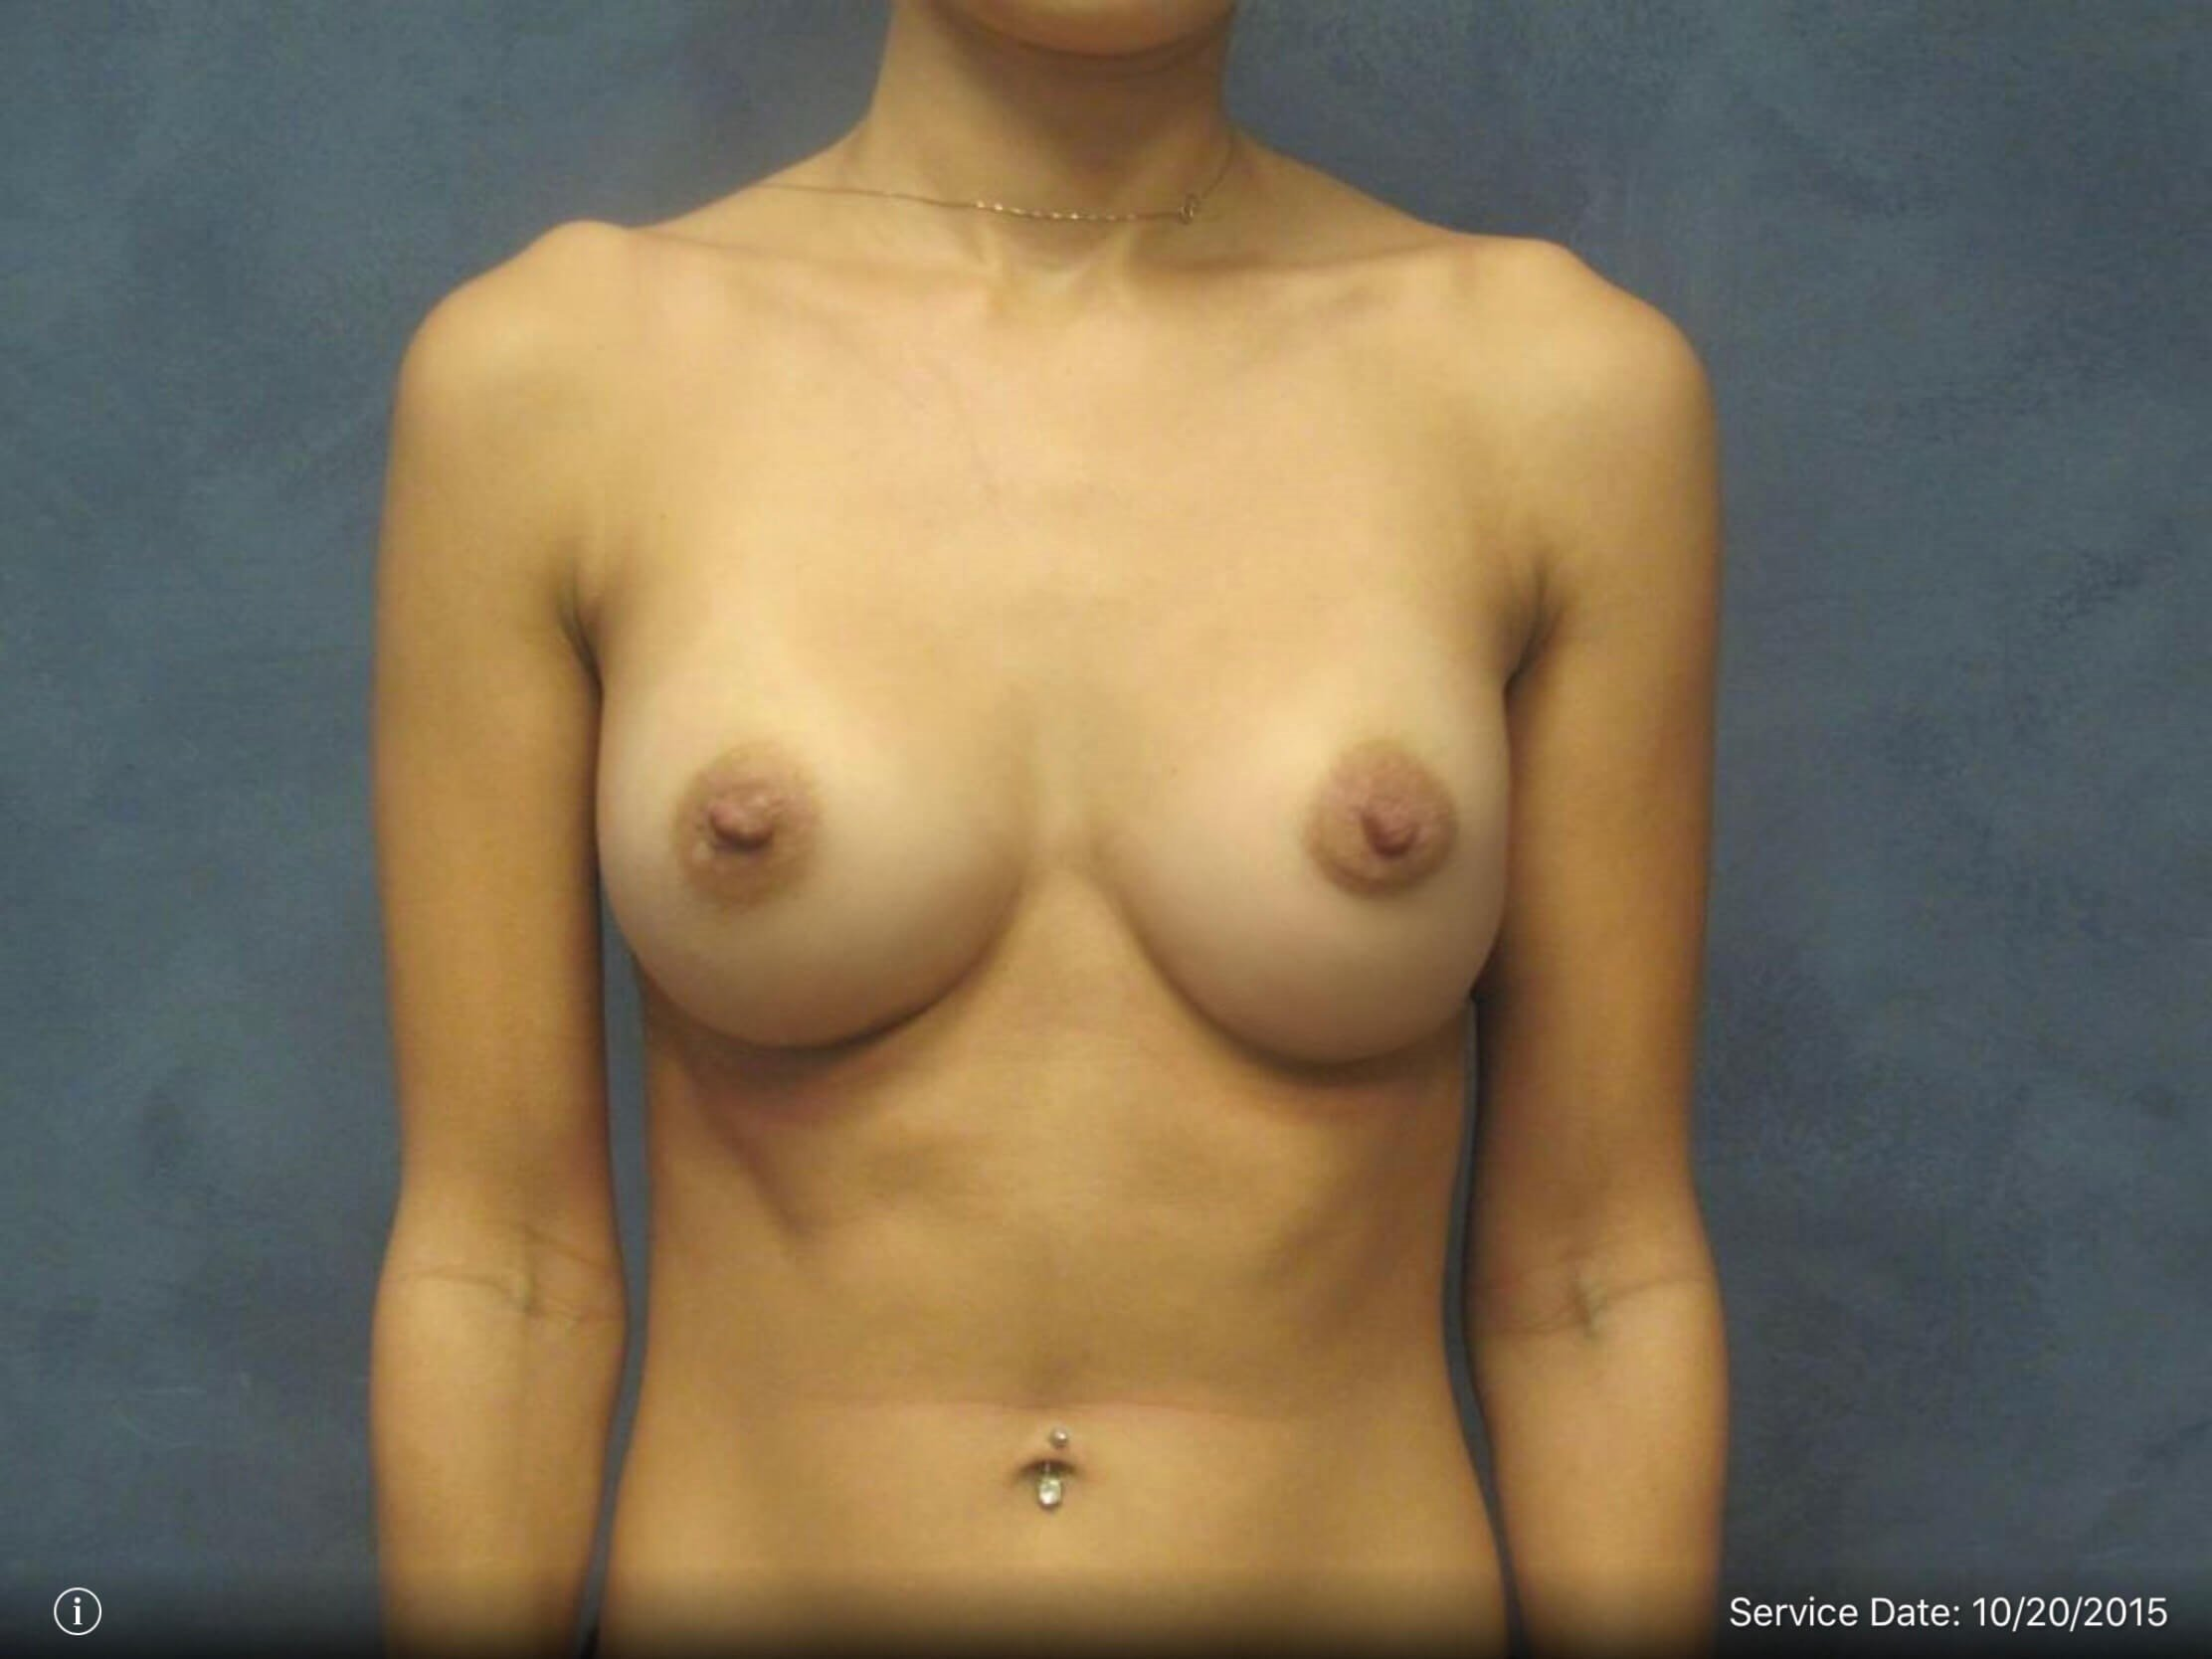 Front View Breast Augmentation 3 Months Post Augmentation